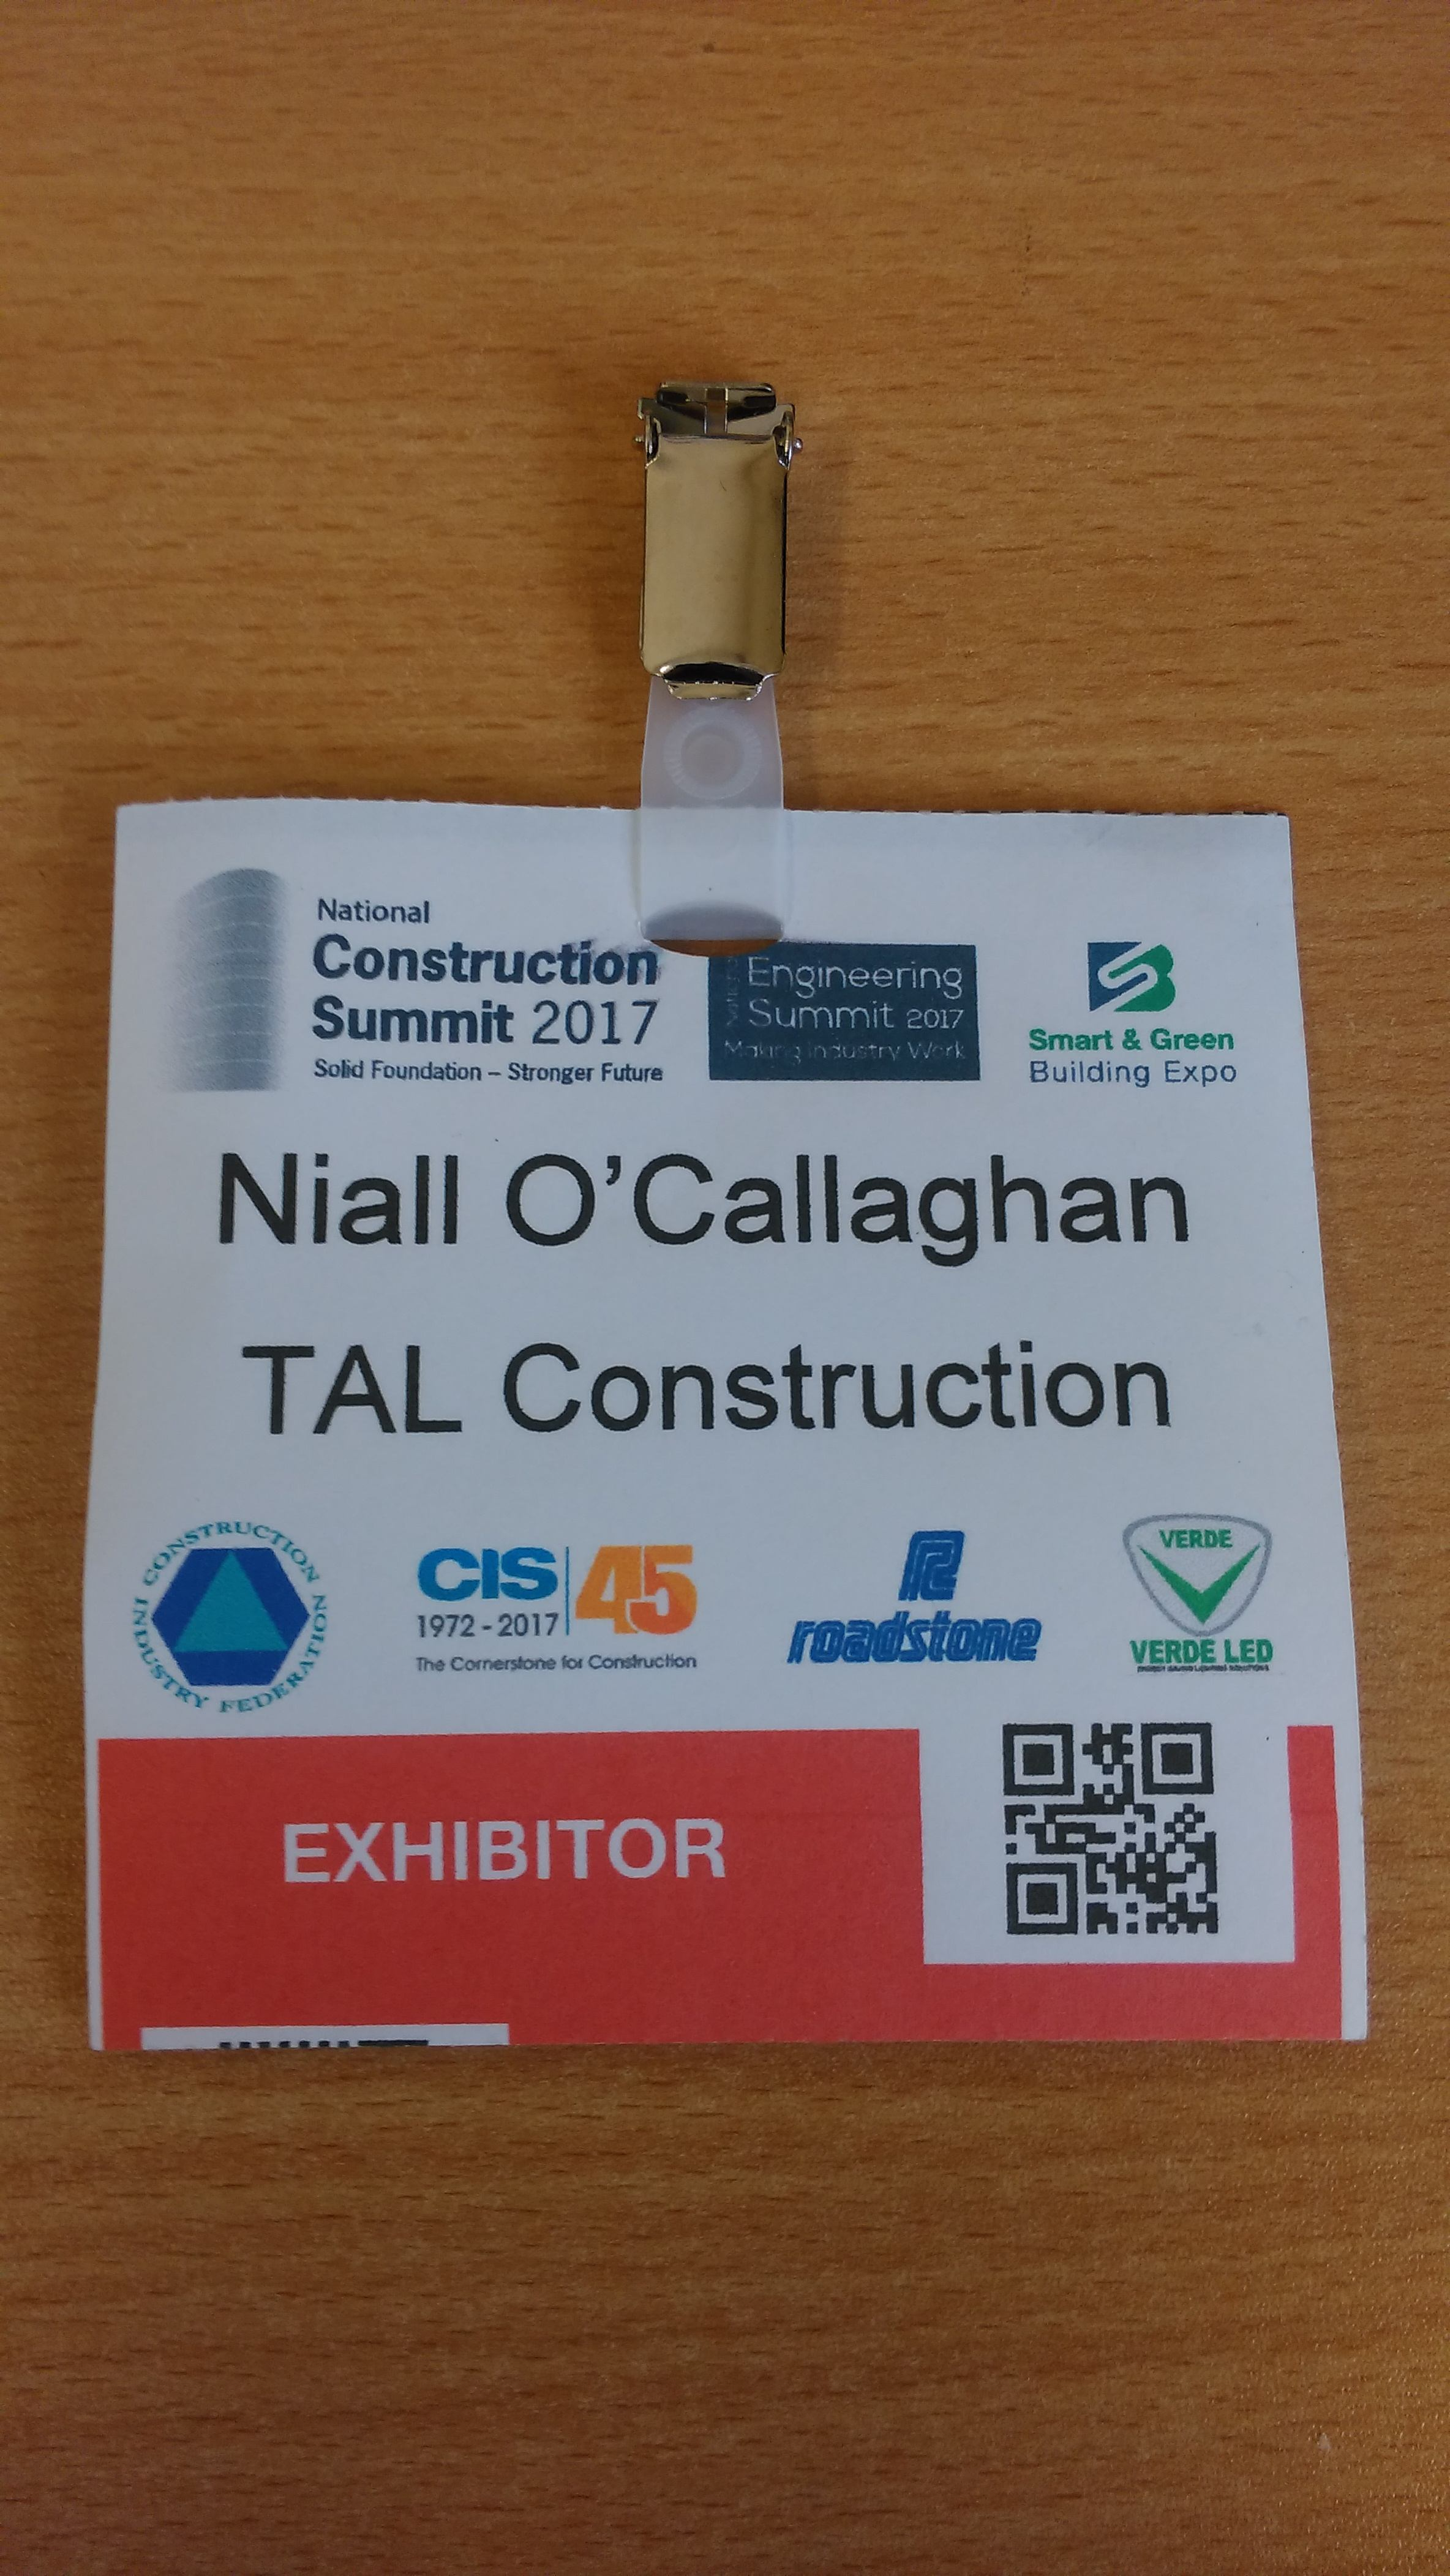 National Construction Summit 2017